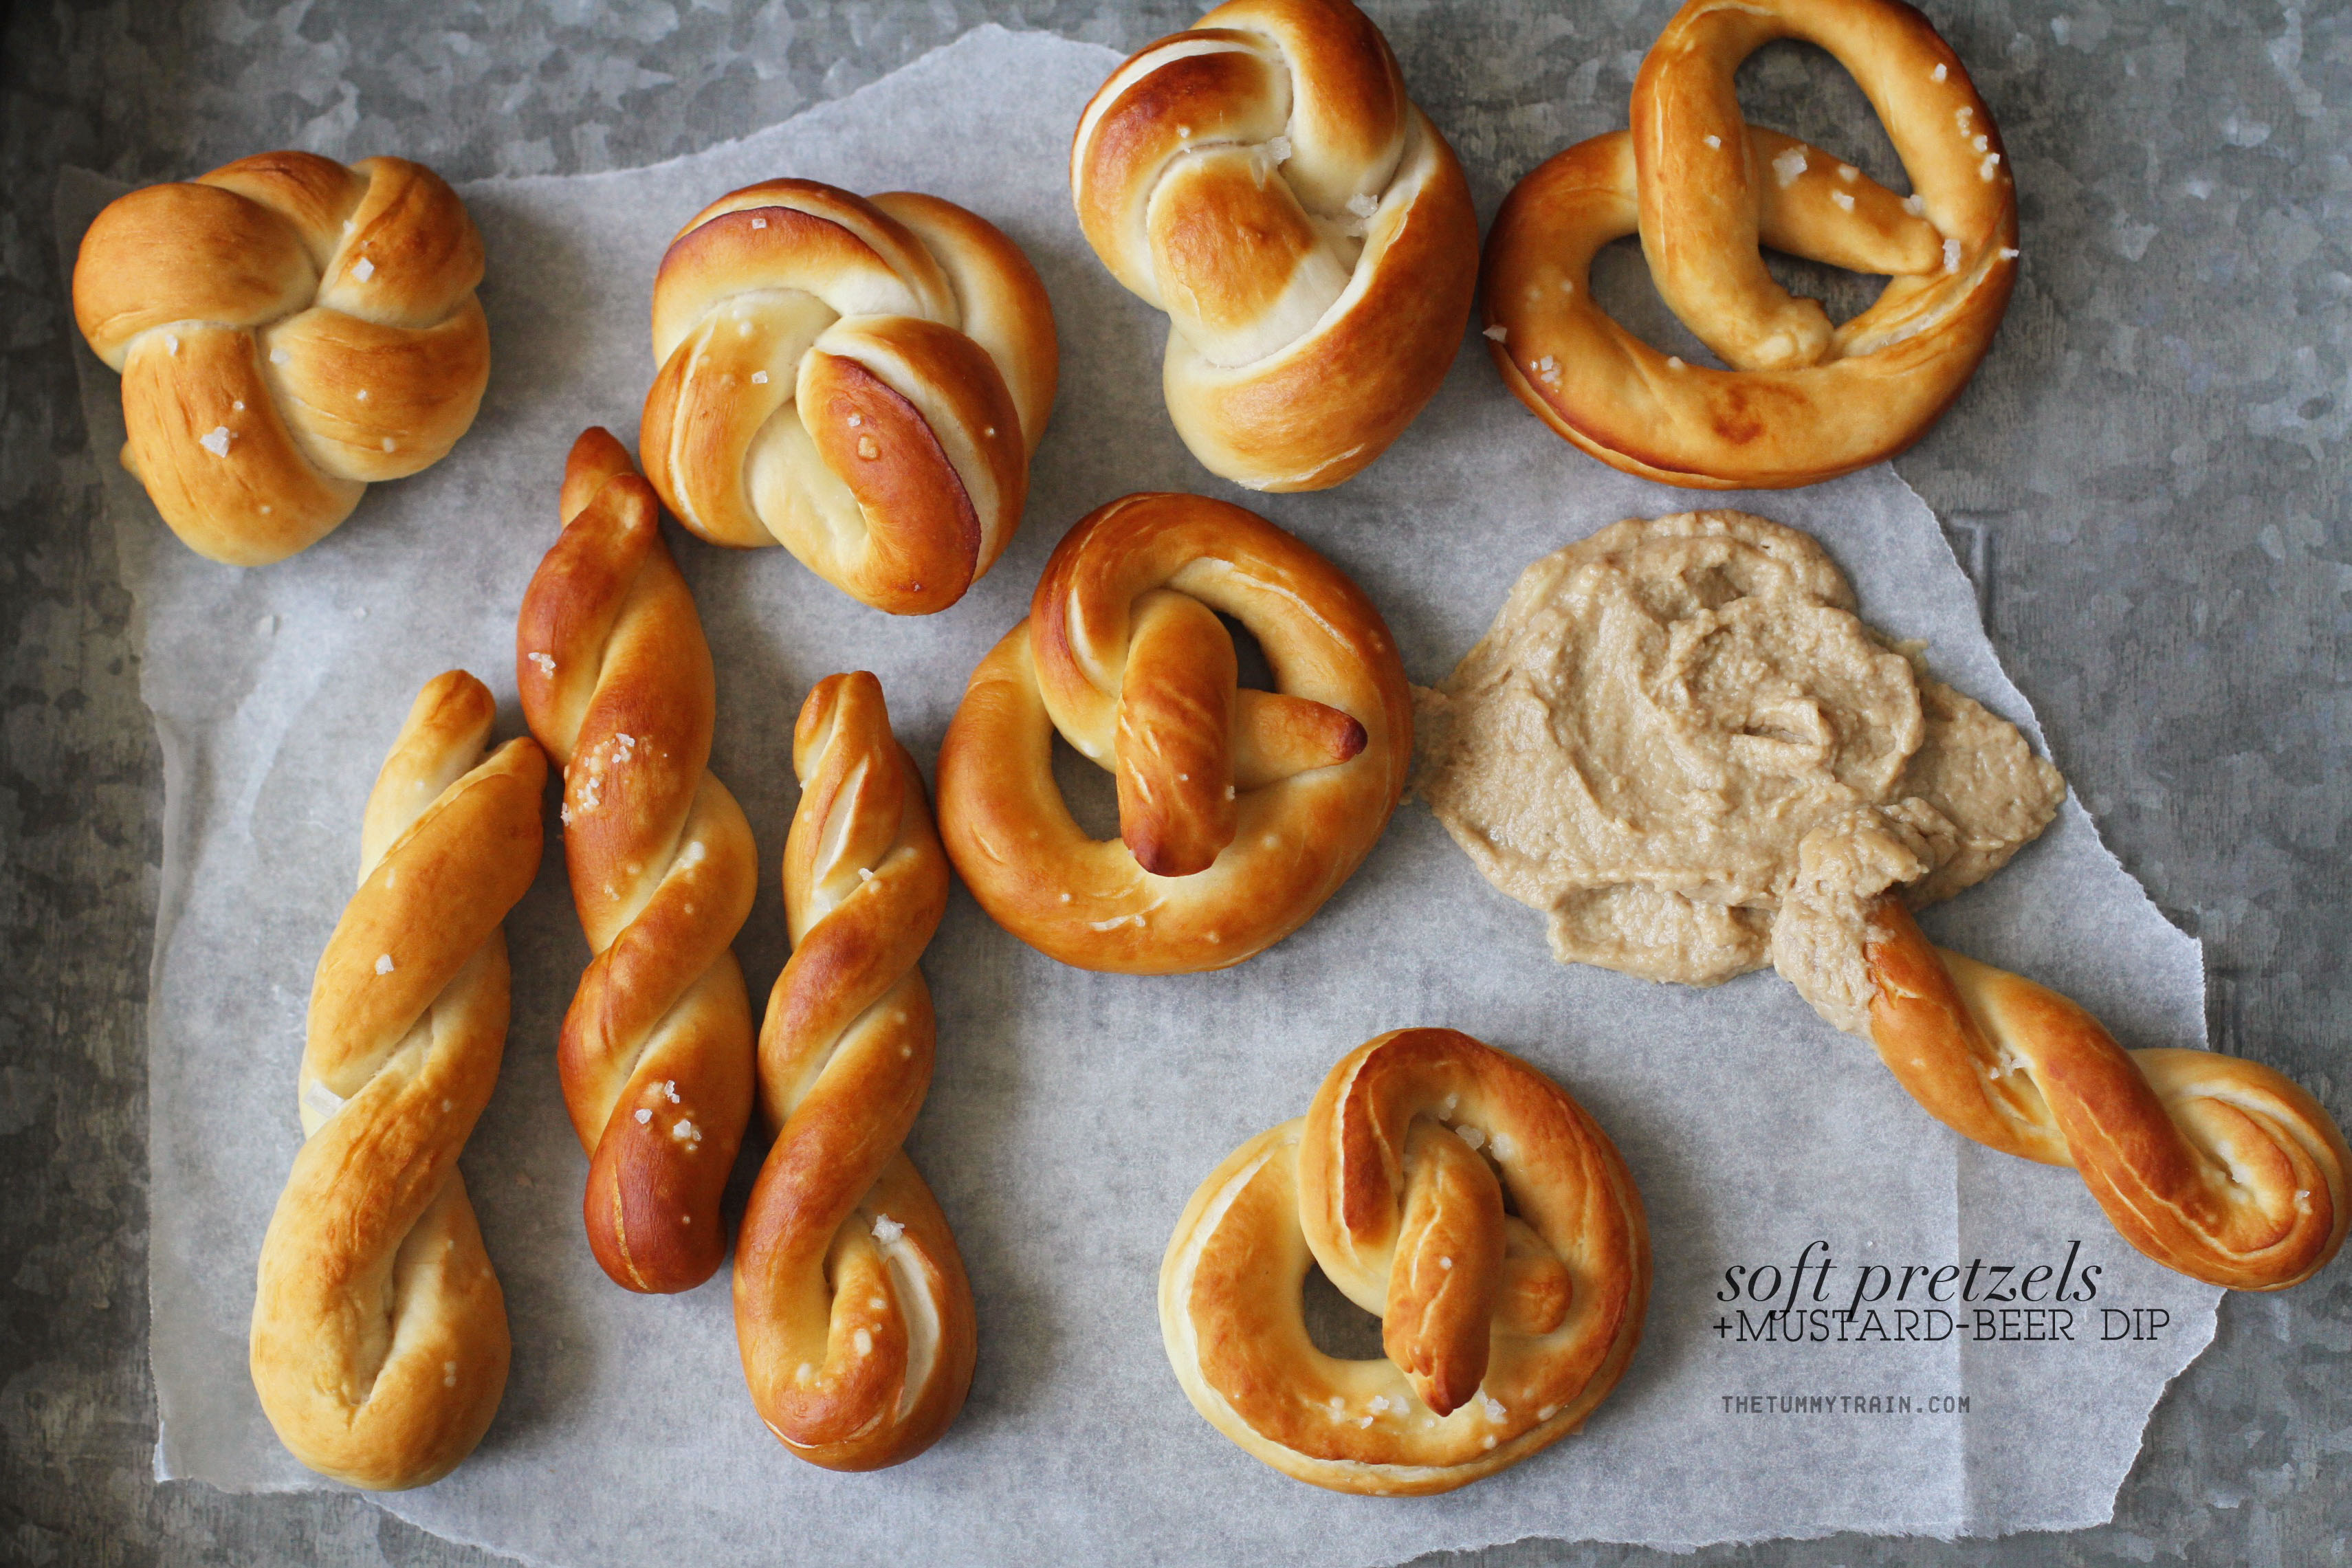 Soft Pretzels 1 - Pretzels with Mustard Dip attempted out of curiosity + a tutorial on how to shape pretzels